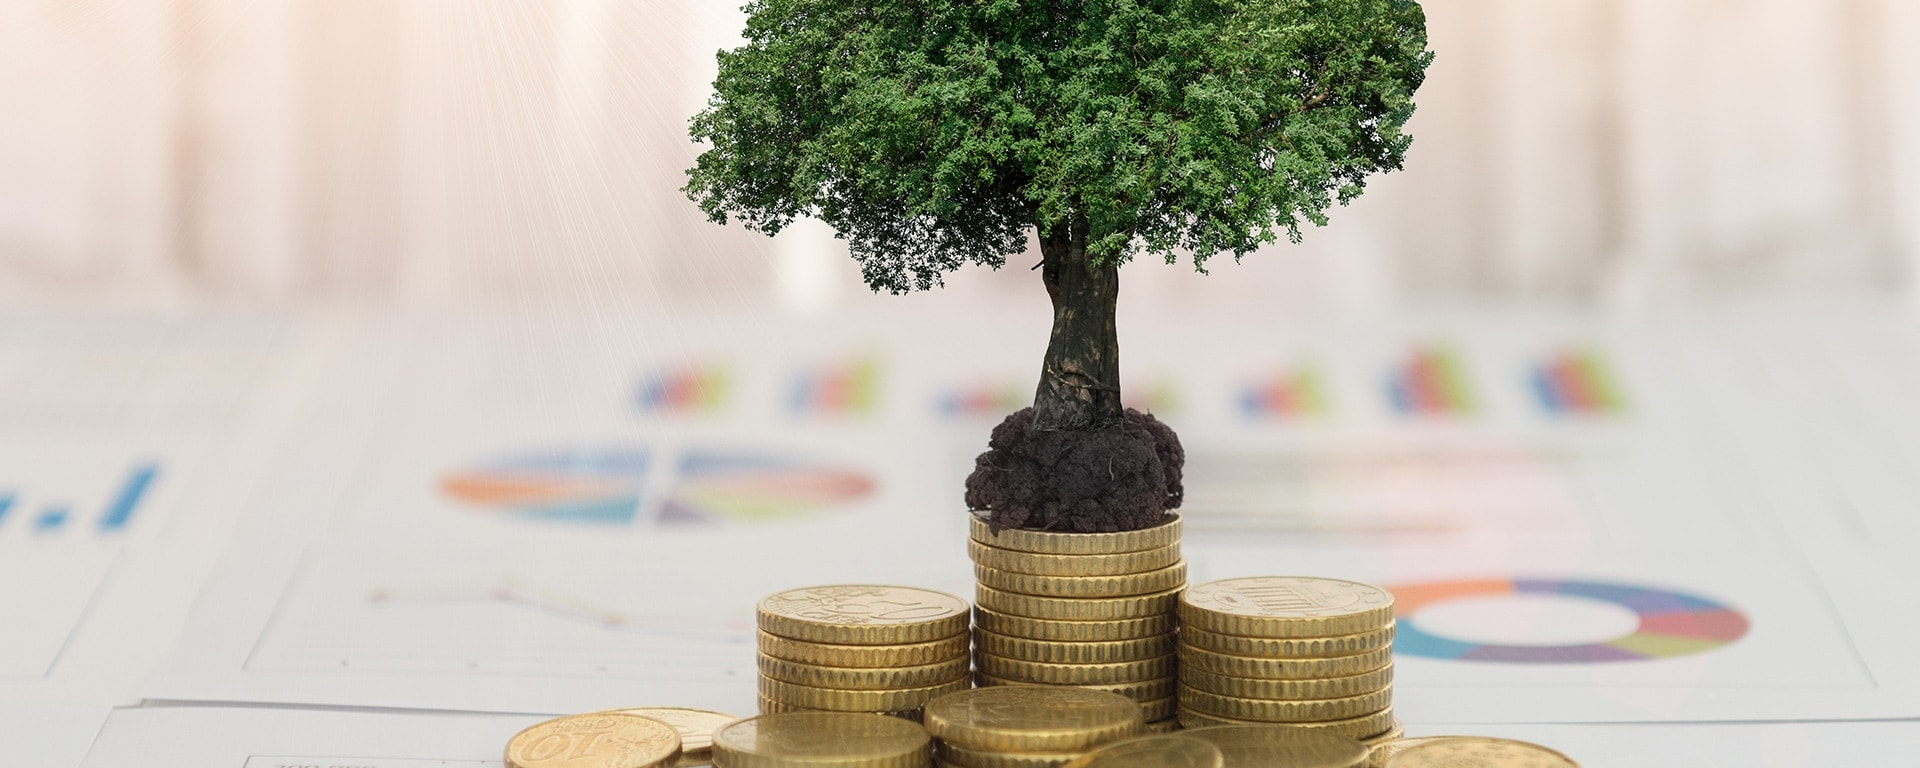 123% ROI with process management - money tree image